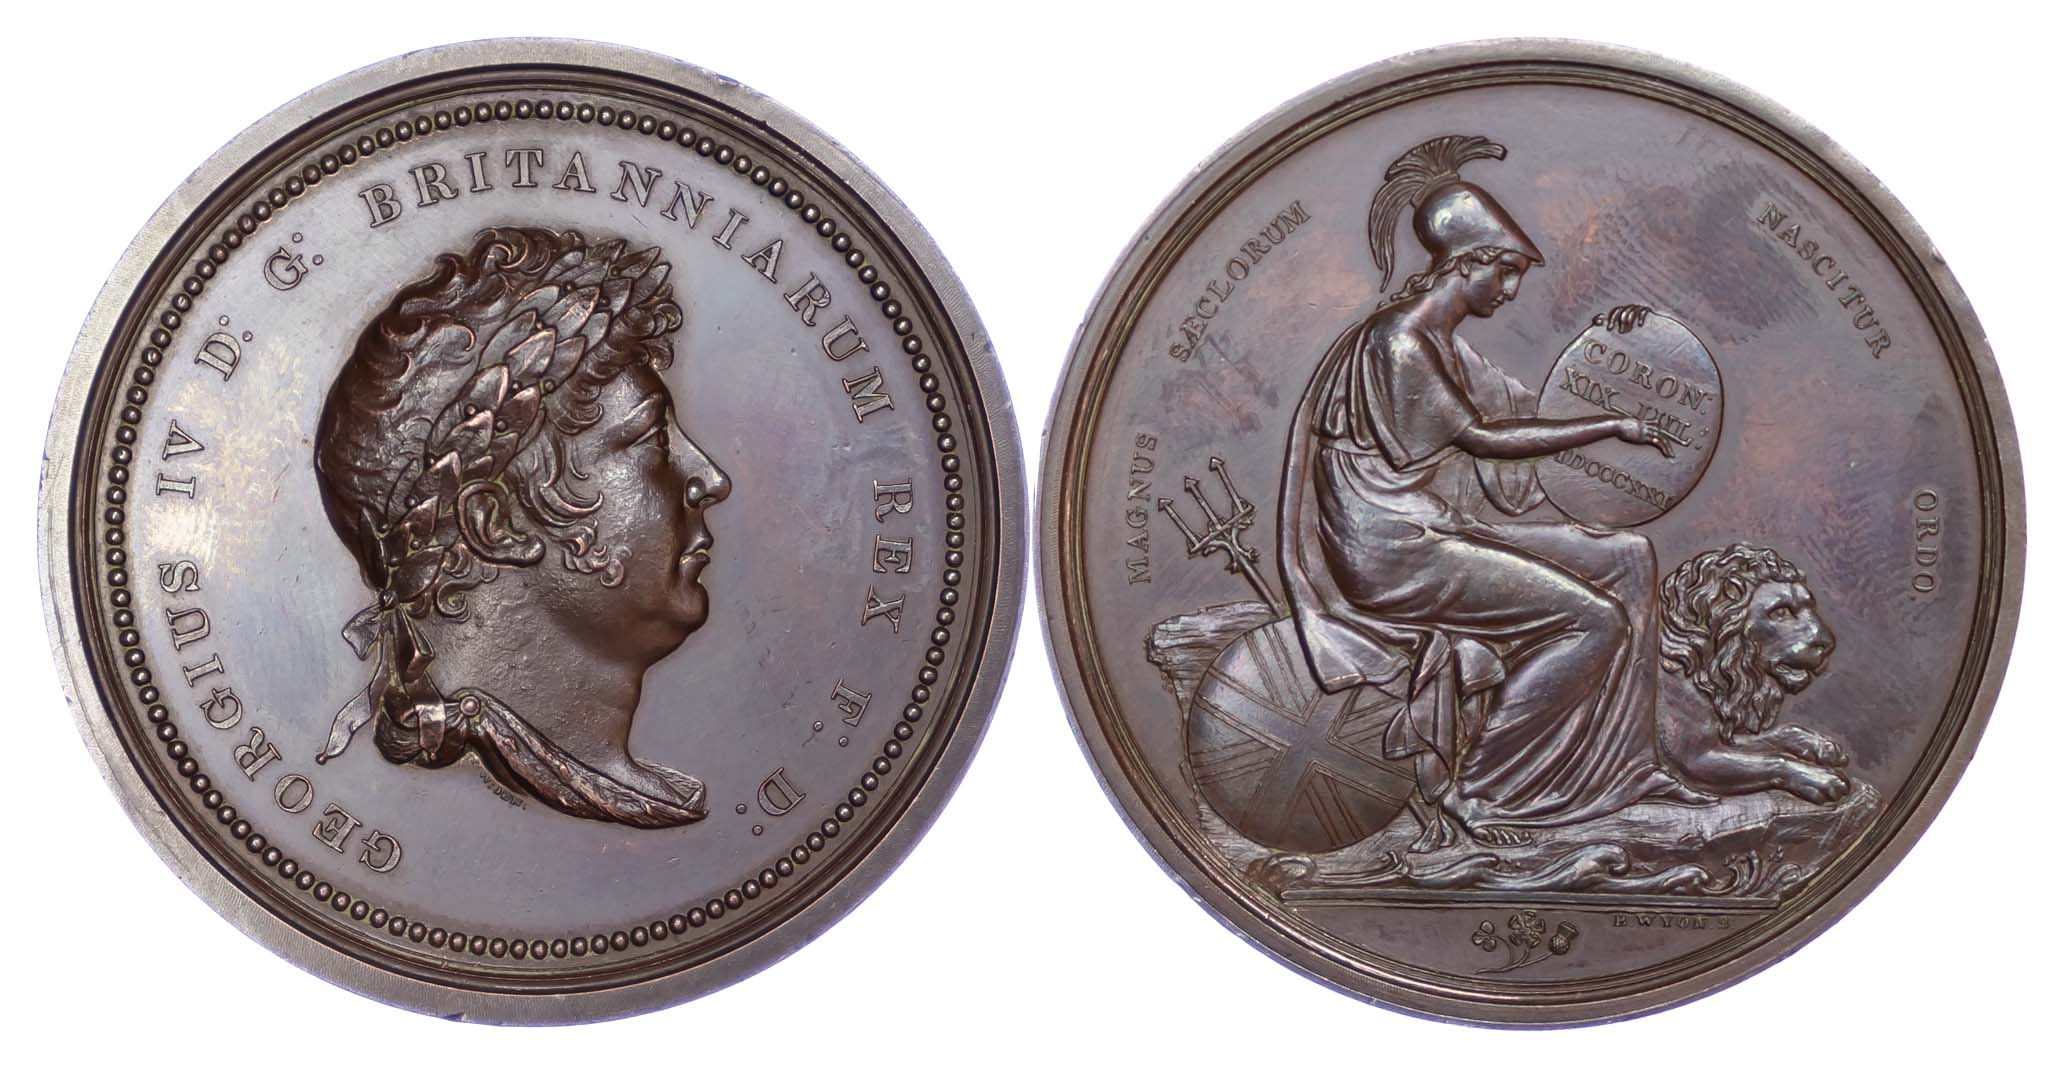 George IV, Coronation 1821, Copper medal